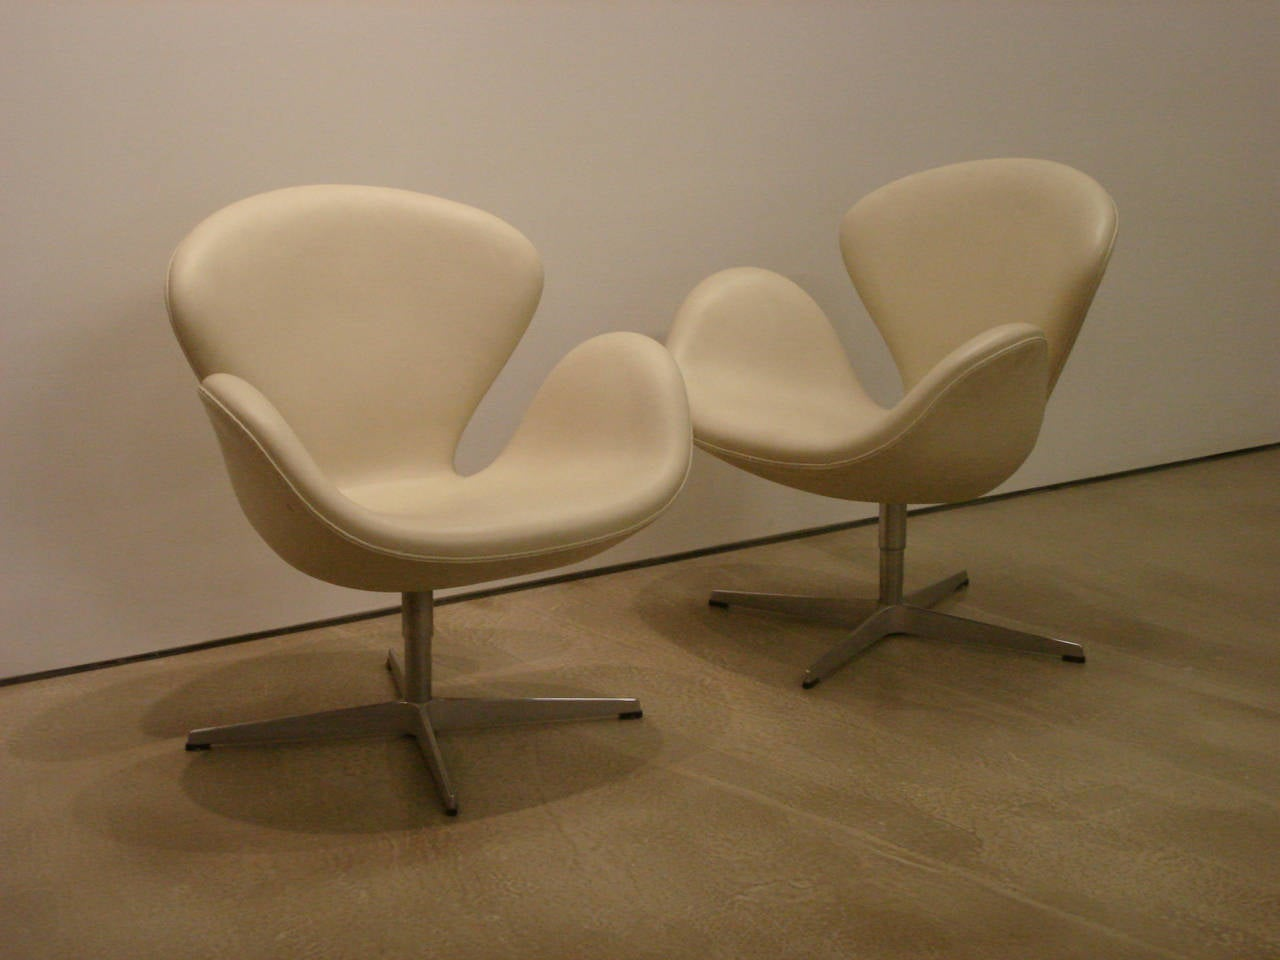 Pair Of Swan Chairs In White Leather By Arne Jacobsen At 1stdibs